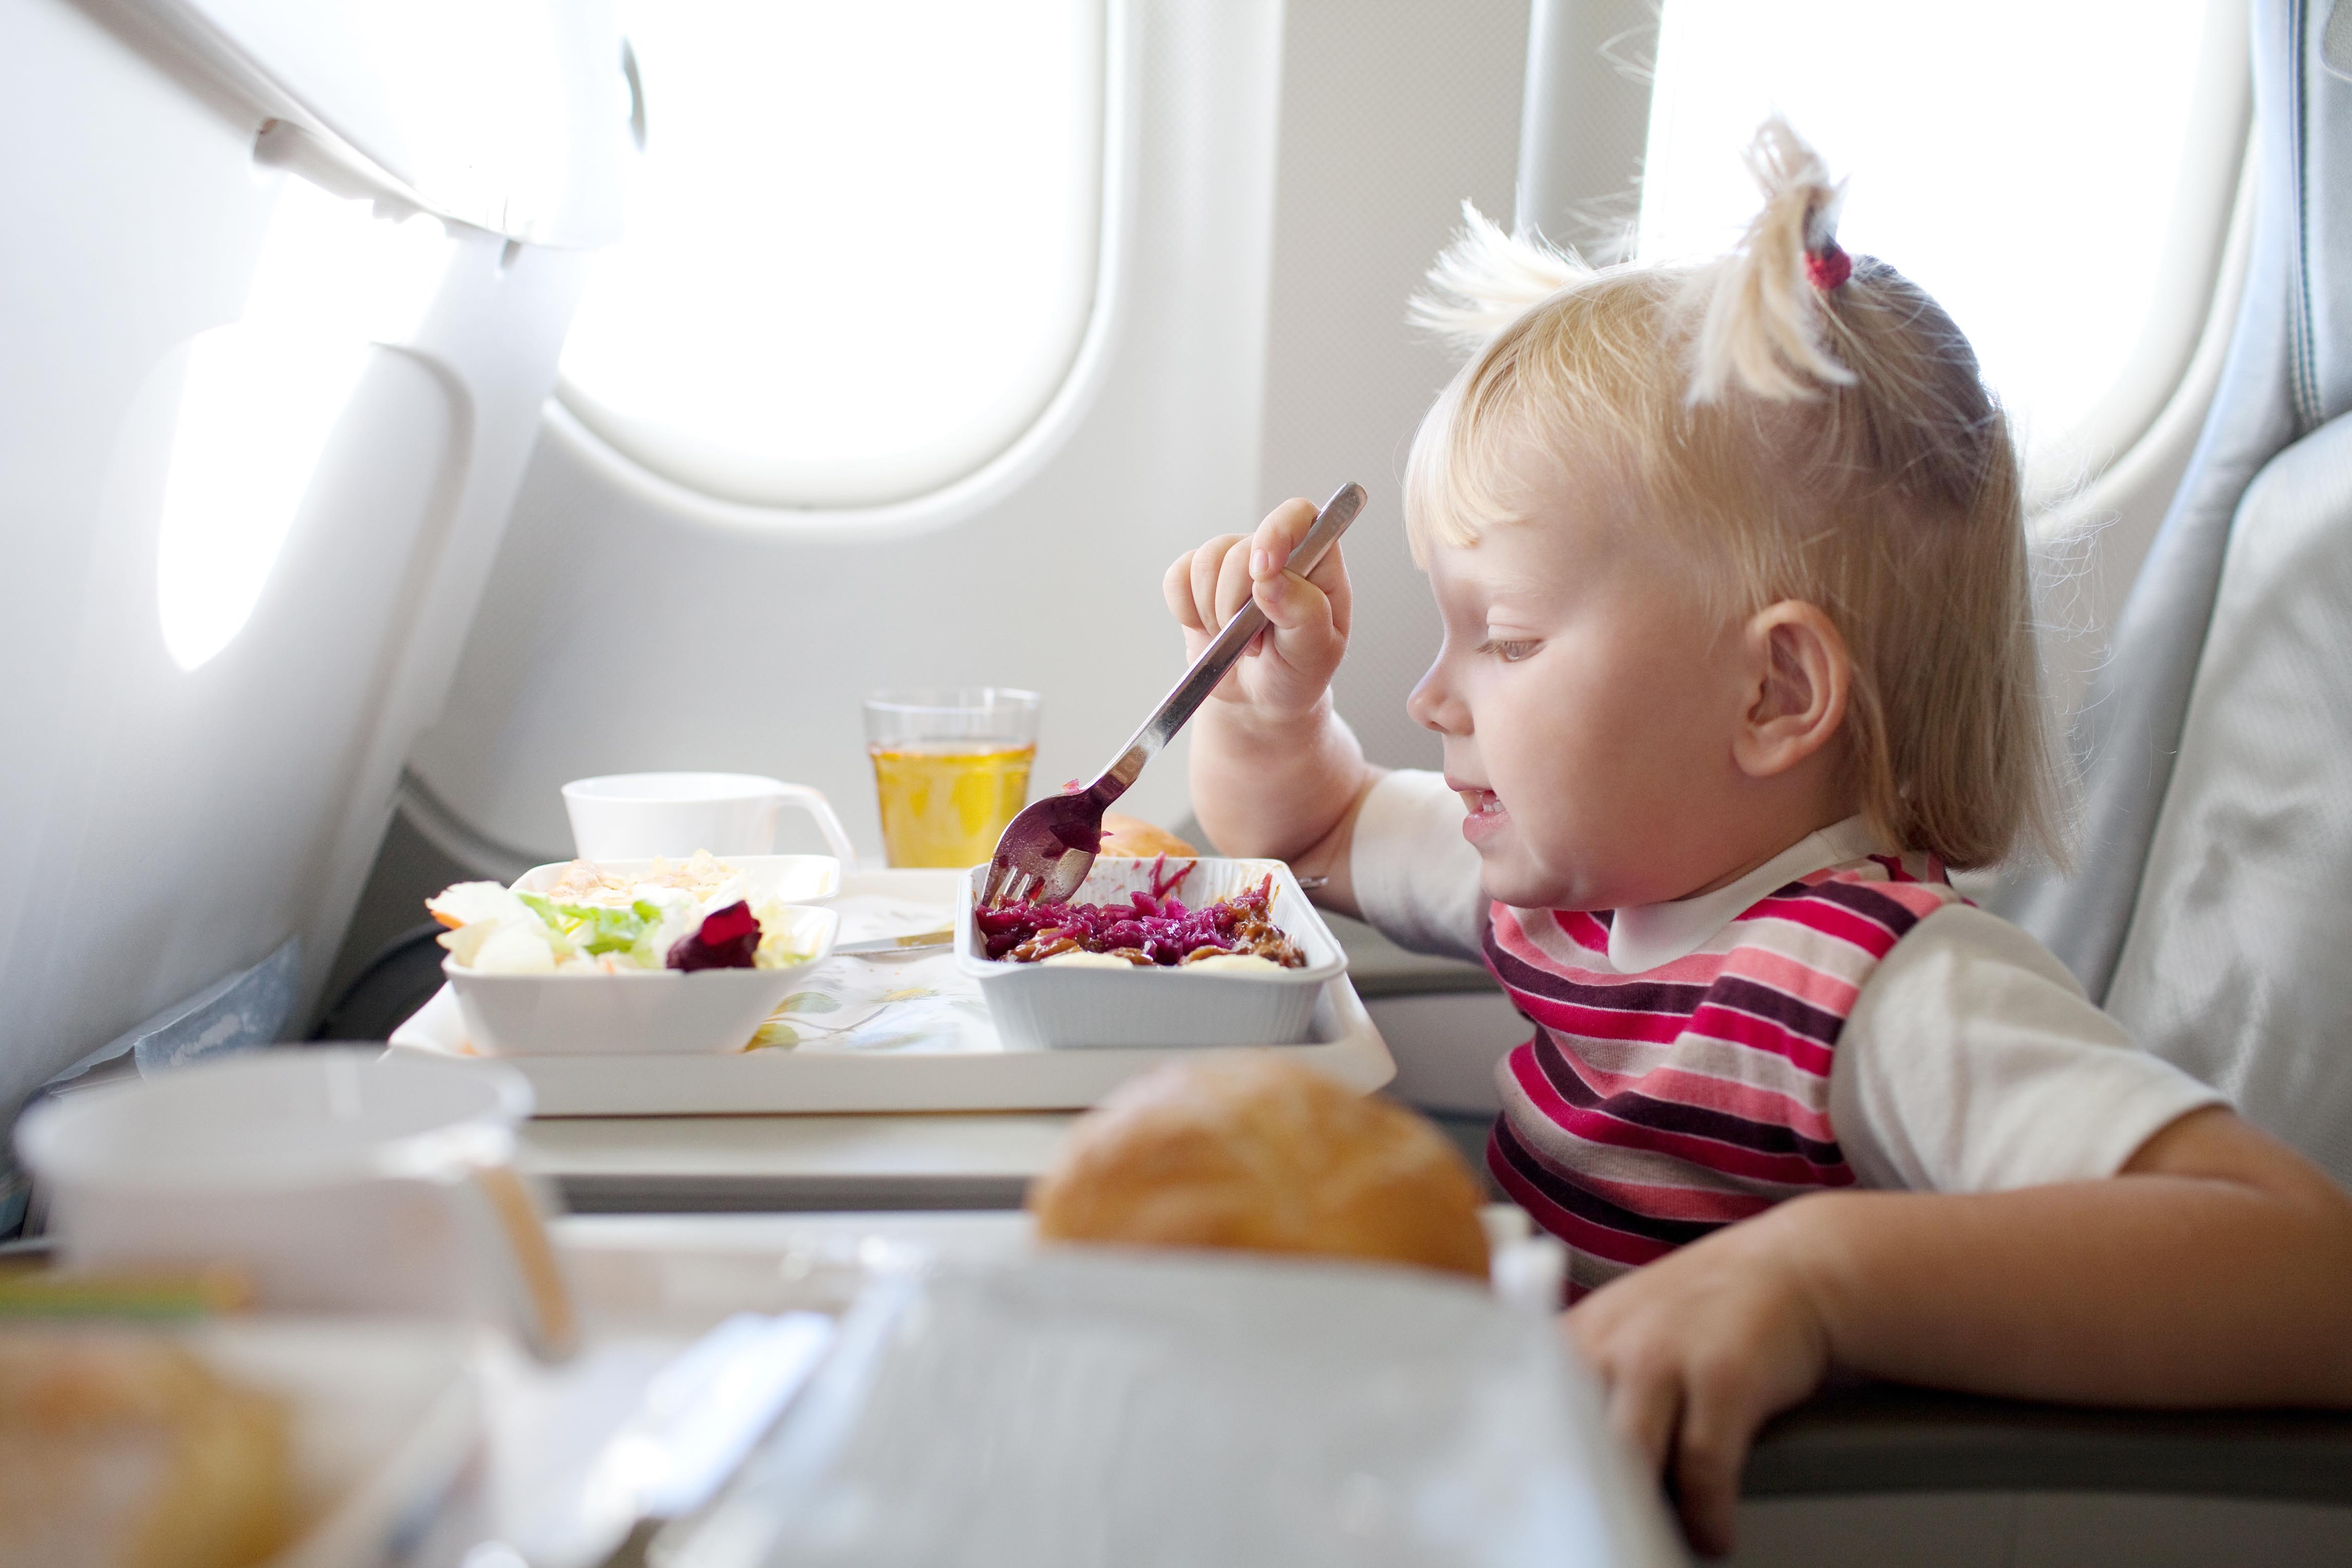 Guide for Air Travel with Kids